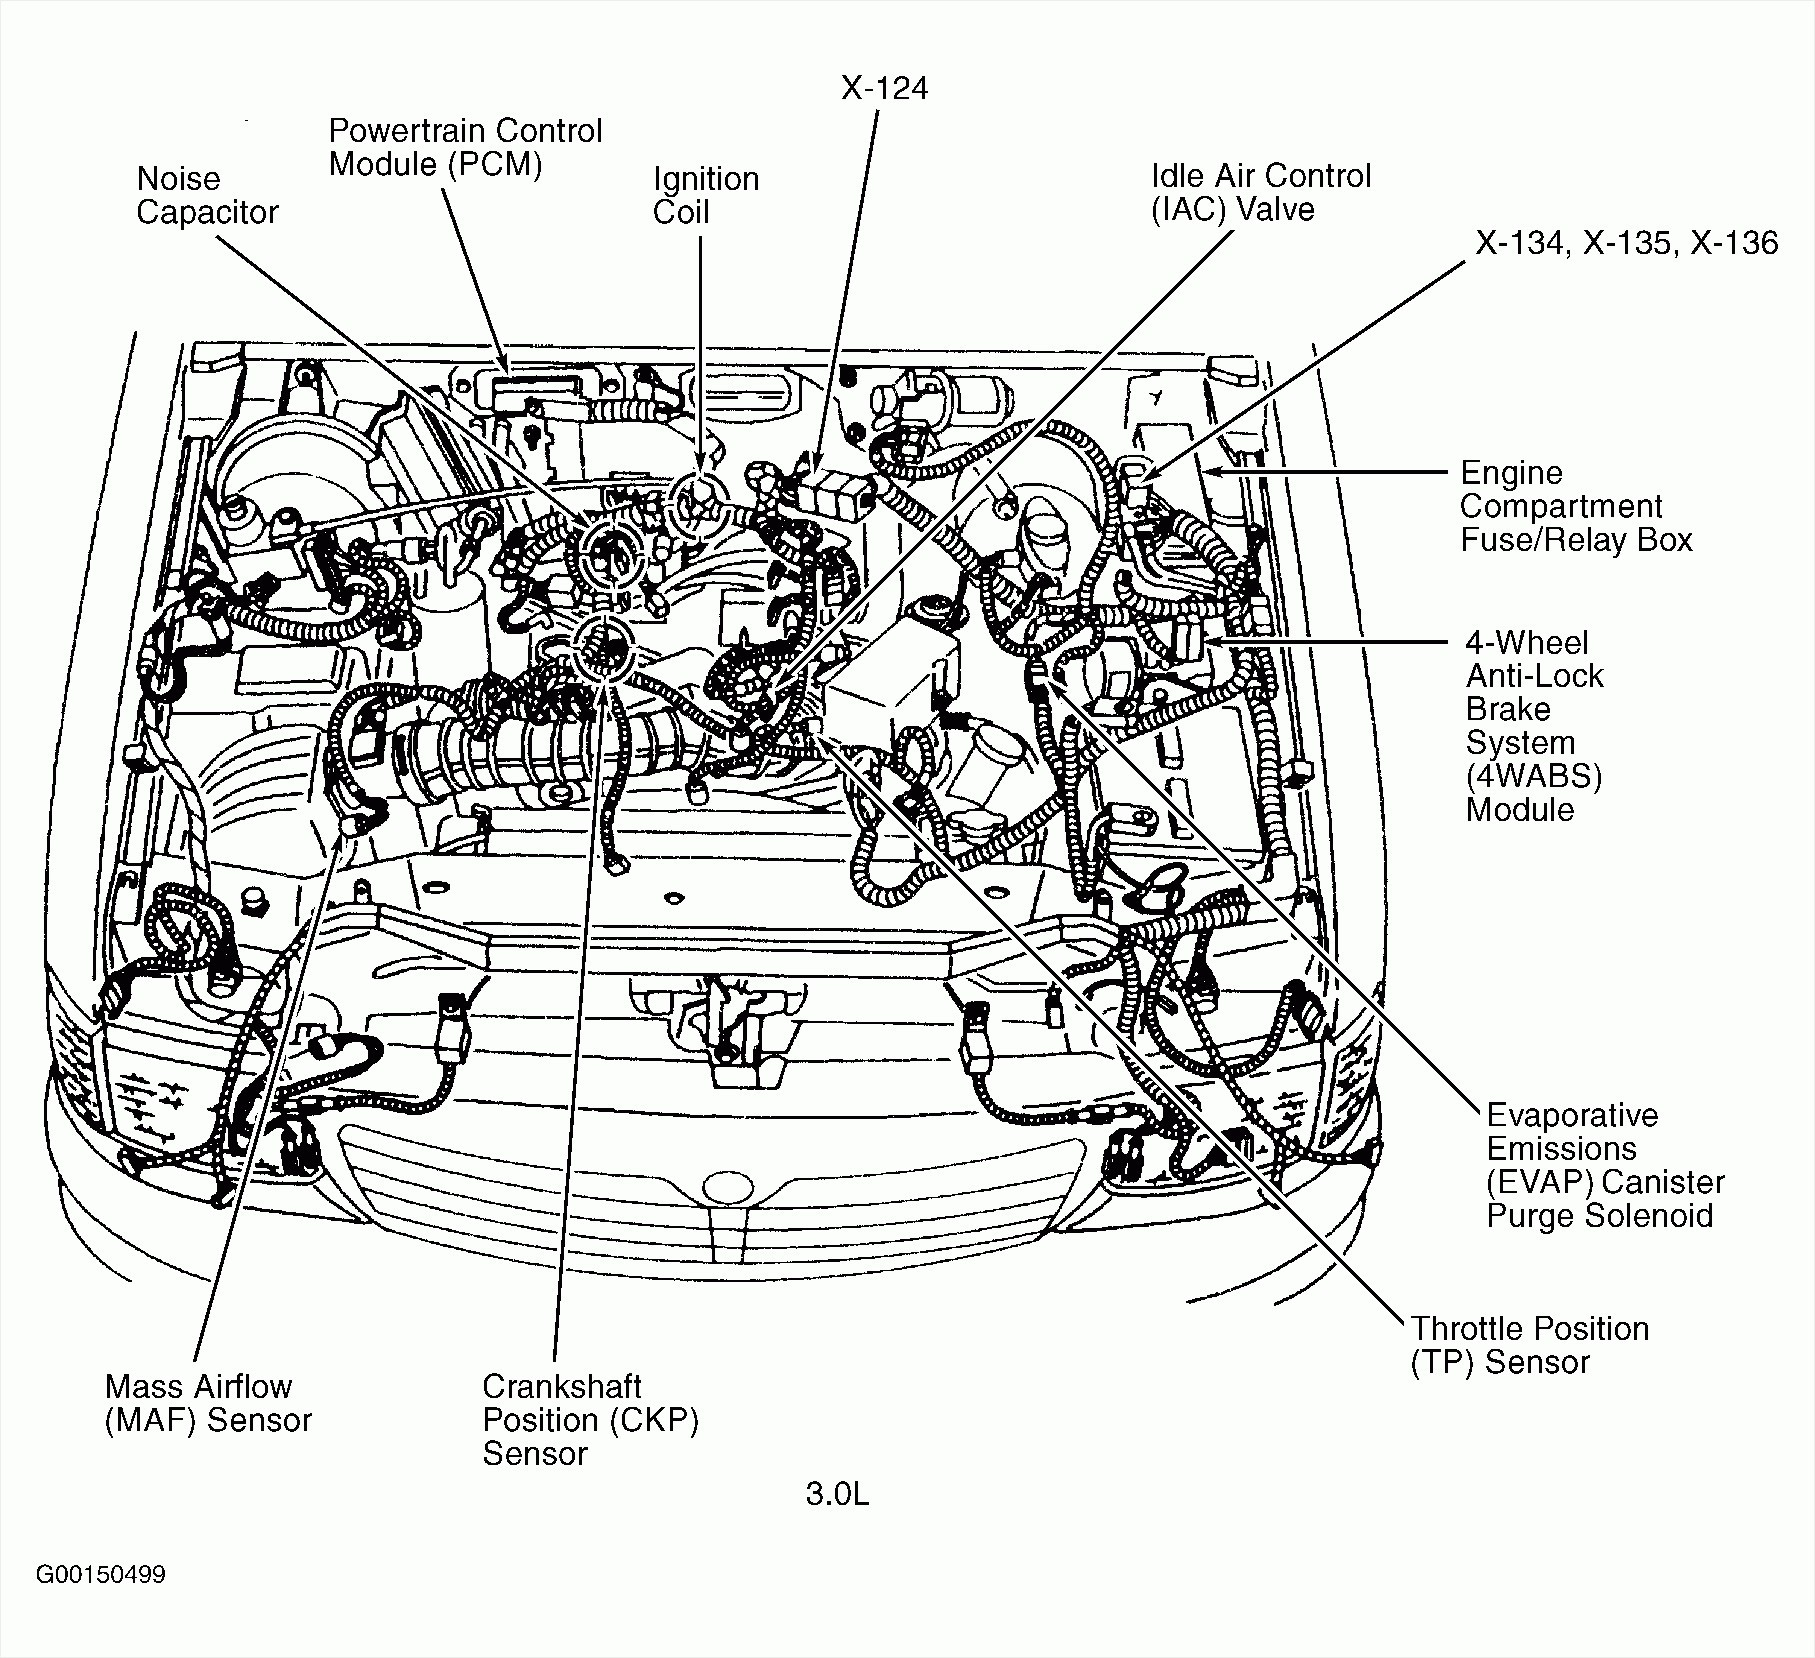 Fuse Box In 2003 Mercury Mountaineer Wiring Library Panel Diagram 2006 Mazda B3000 Engine Real U2022 Rh Powerfitnutrition Co